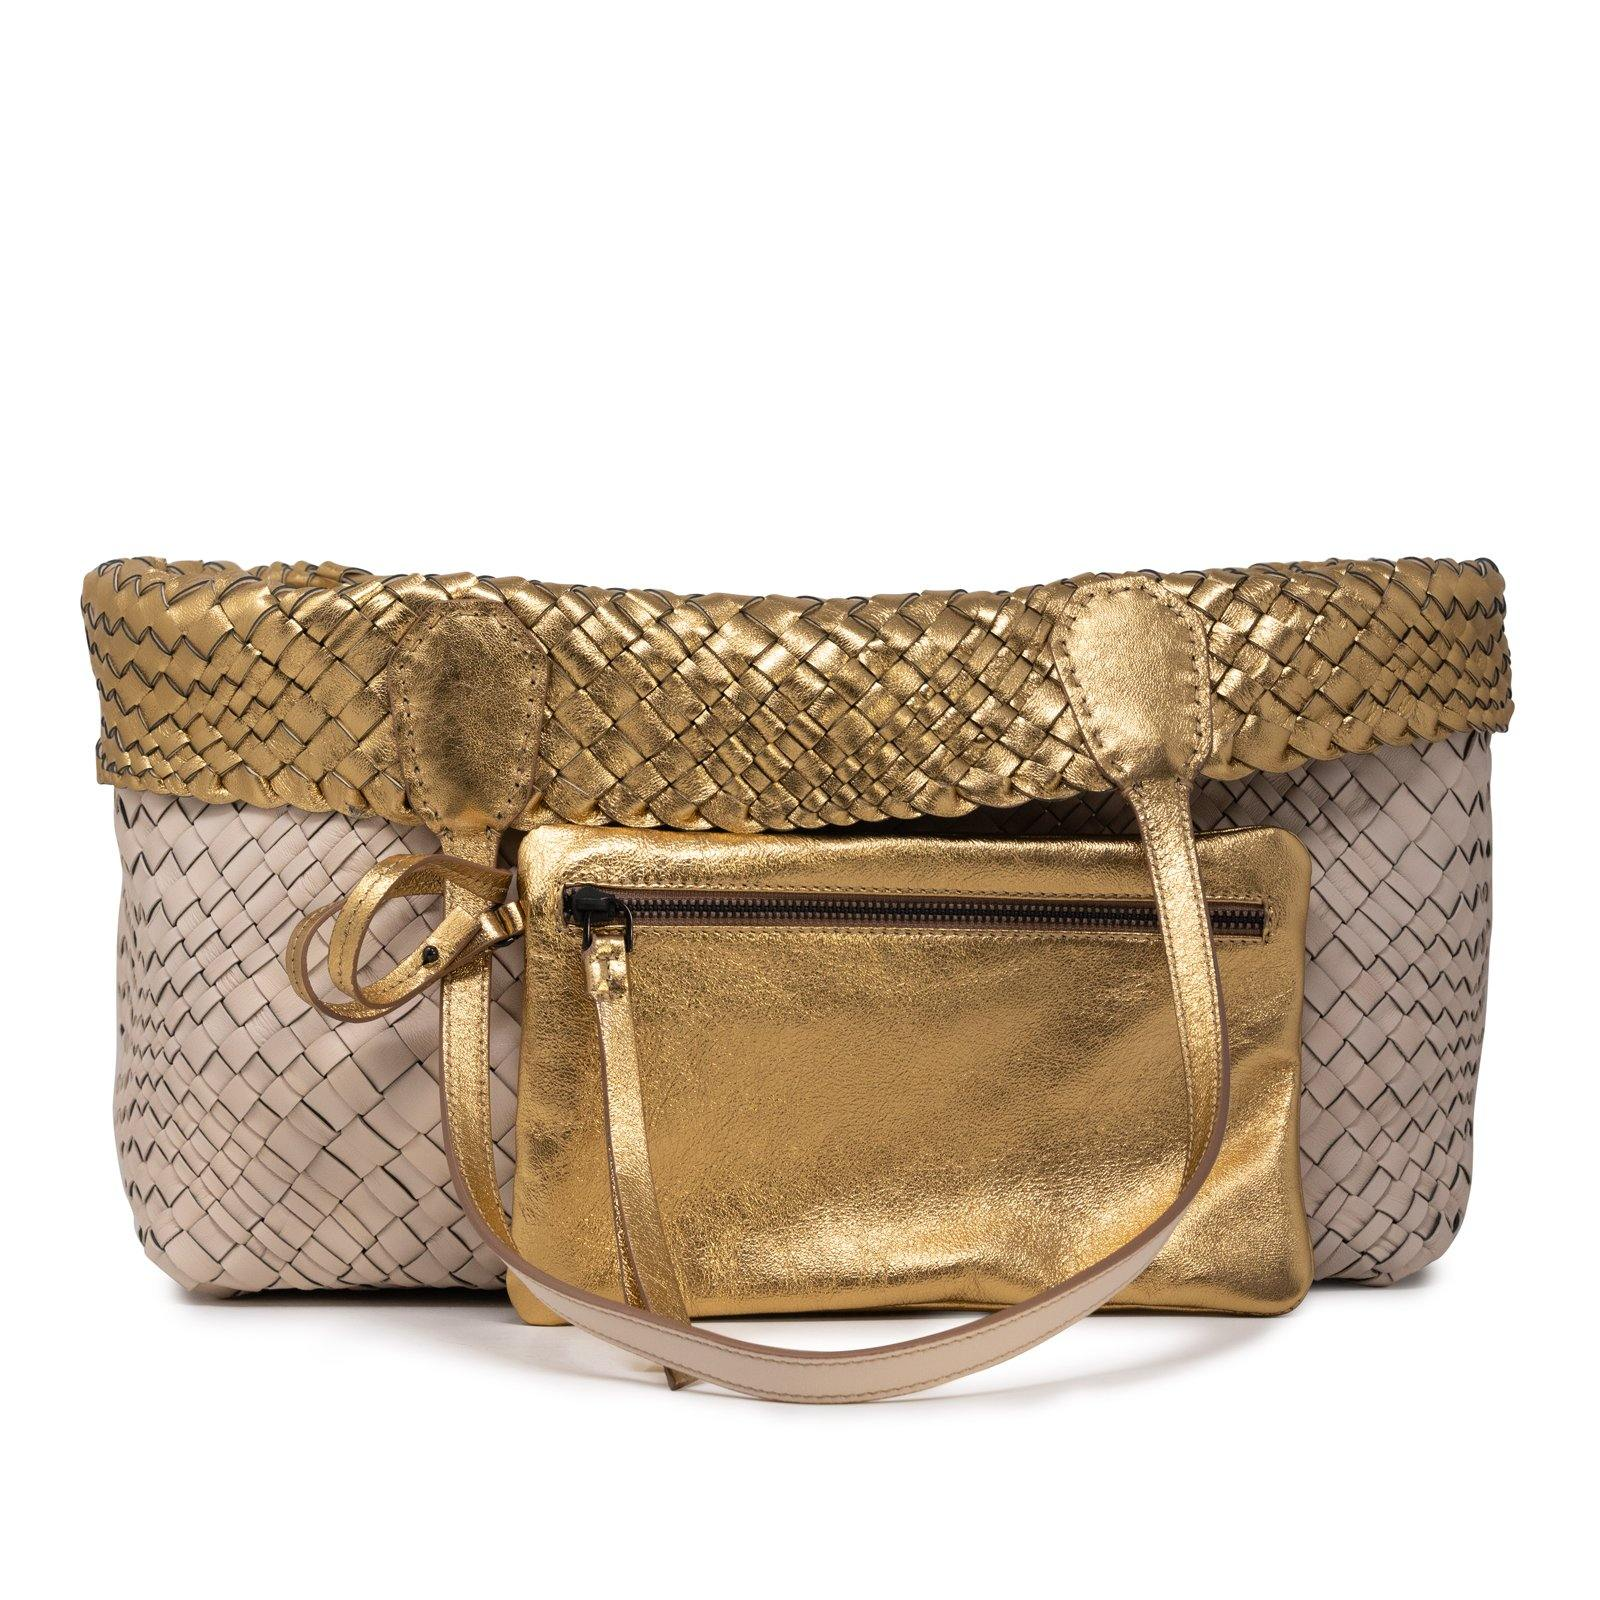 Women Leather Intreccio Optical Reversible Bag in Sabbia and Gold